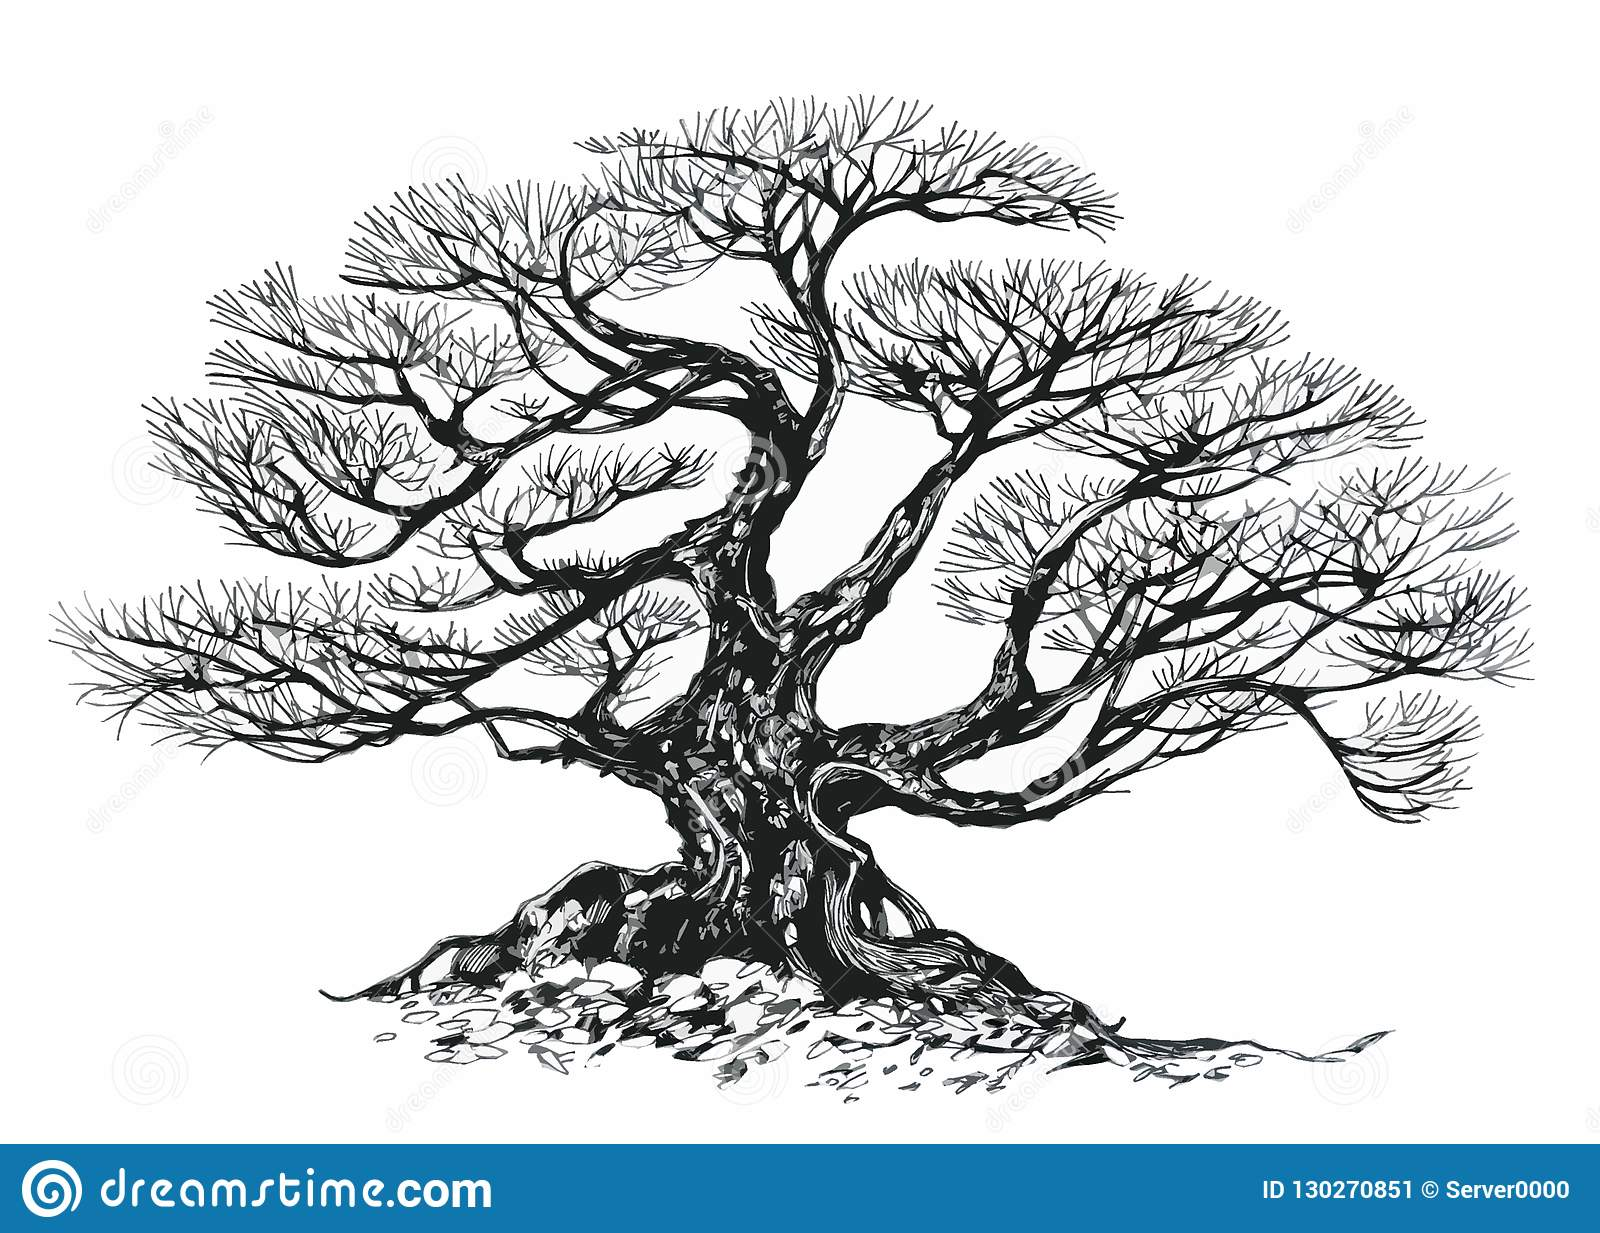 Bonsai Tree Old Tree Drawing Ink Stock Illustration Illustration Of Plant Lush 130270851